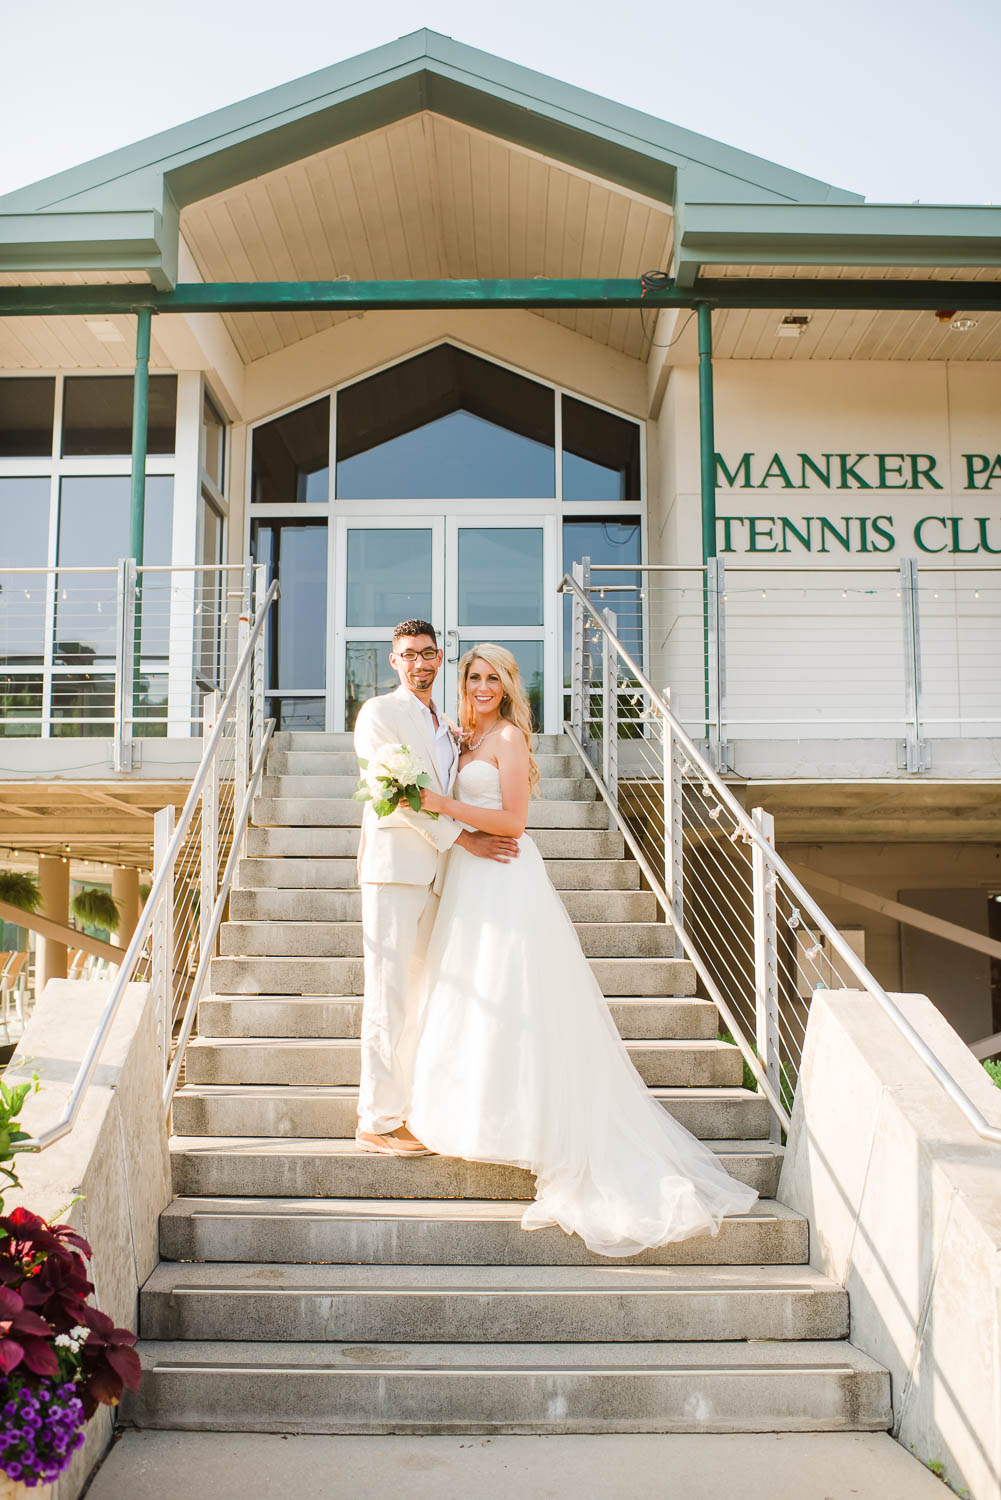 wedding couple standing on front steps at Manker Patten Tennis Club house in Chattanooga